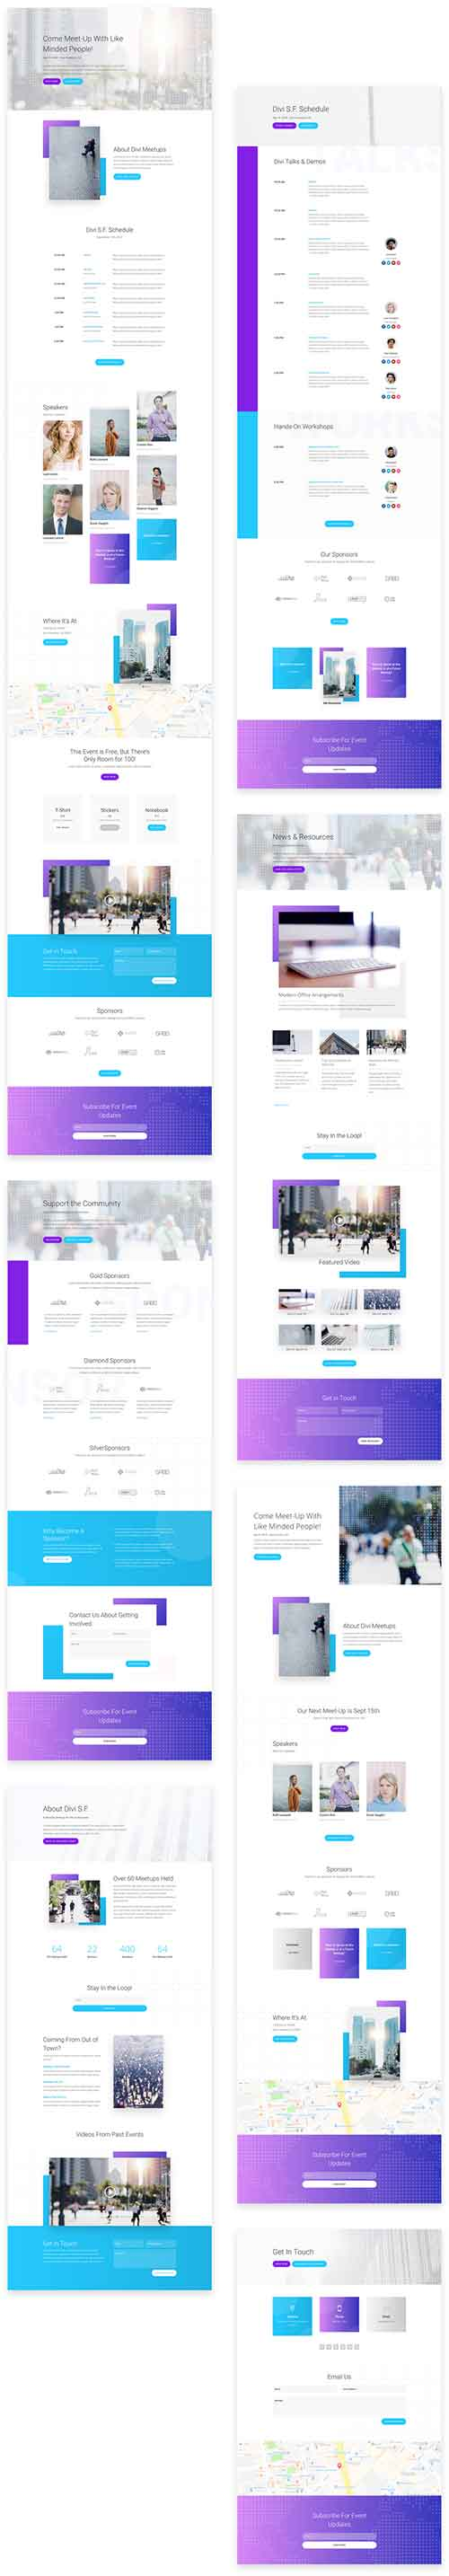 Divi meetup layout pack